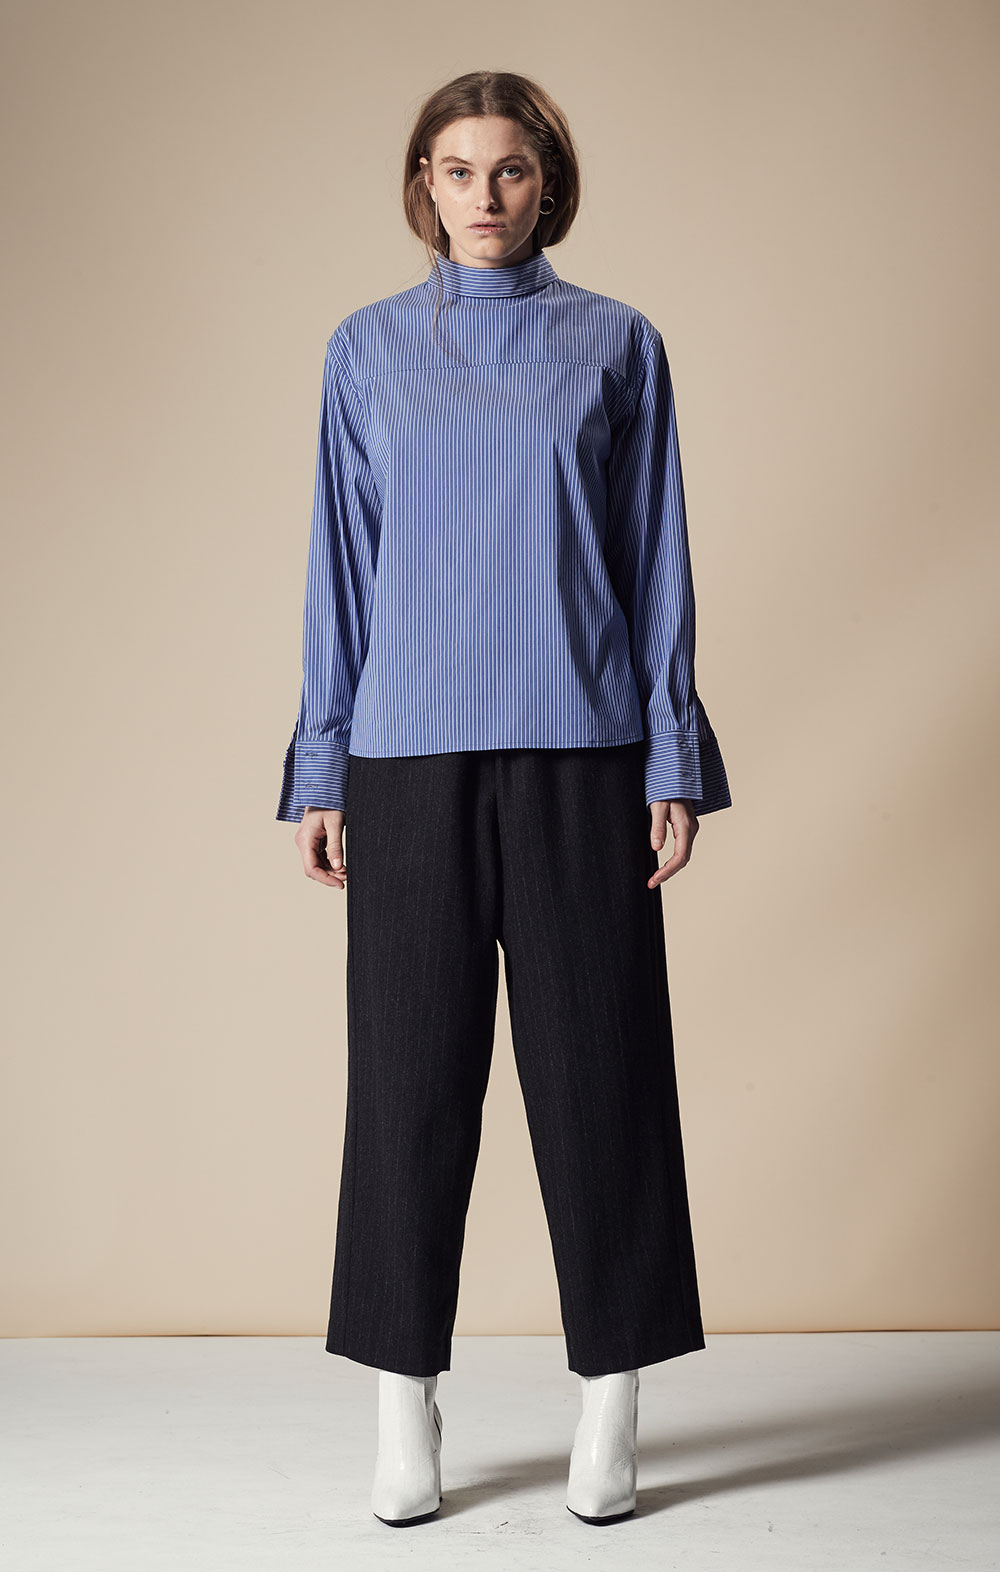 Thin Striped Open Back Shirt FBT025-BLU Elastic Waist Wool-blend Pants FBP037-BLK